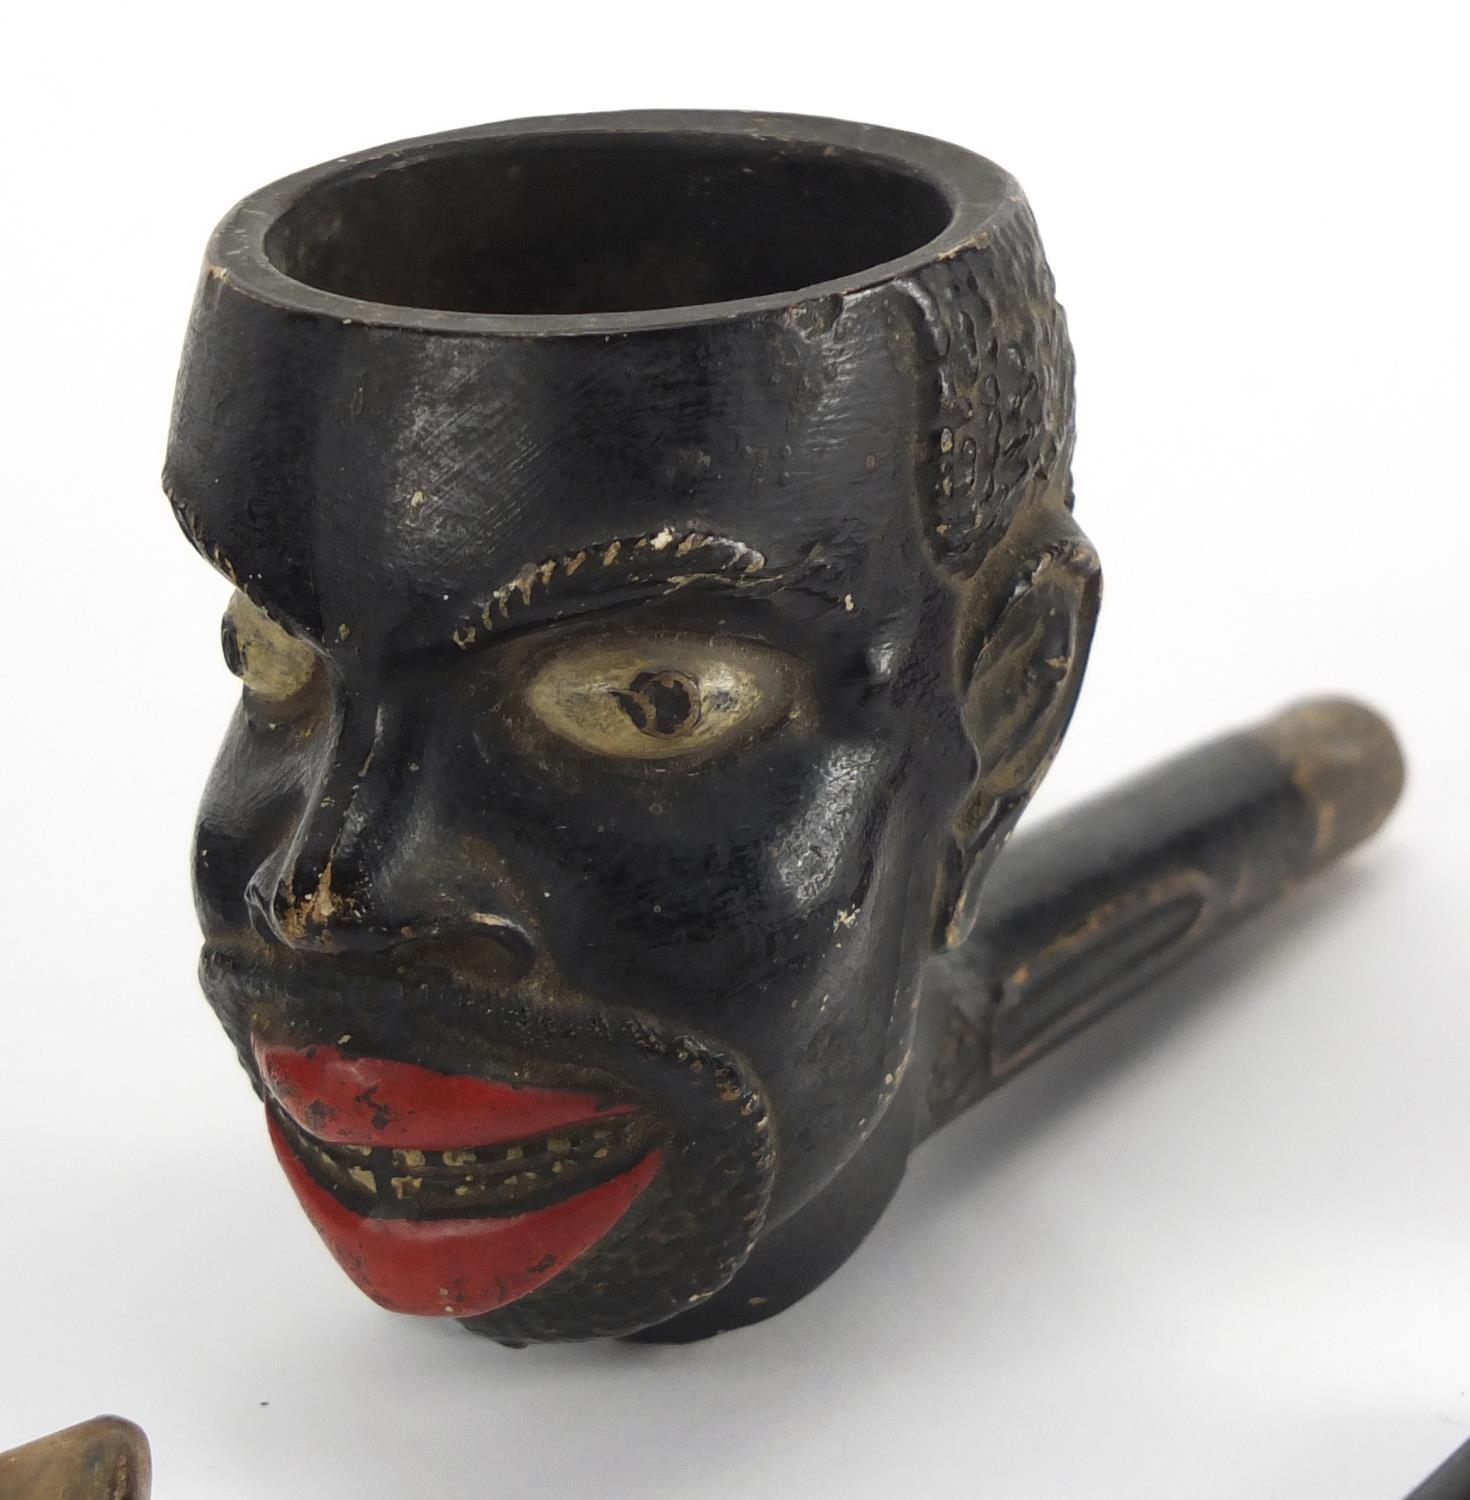 Lot 48 - Five antique and later pipes including including a Blackamoors head and Meerschaum example with